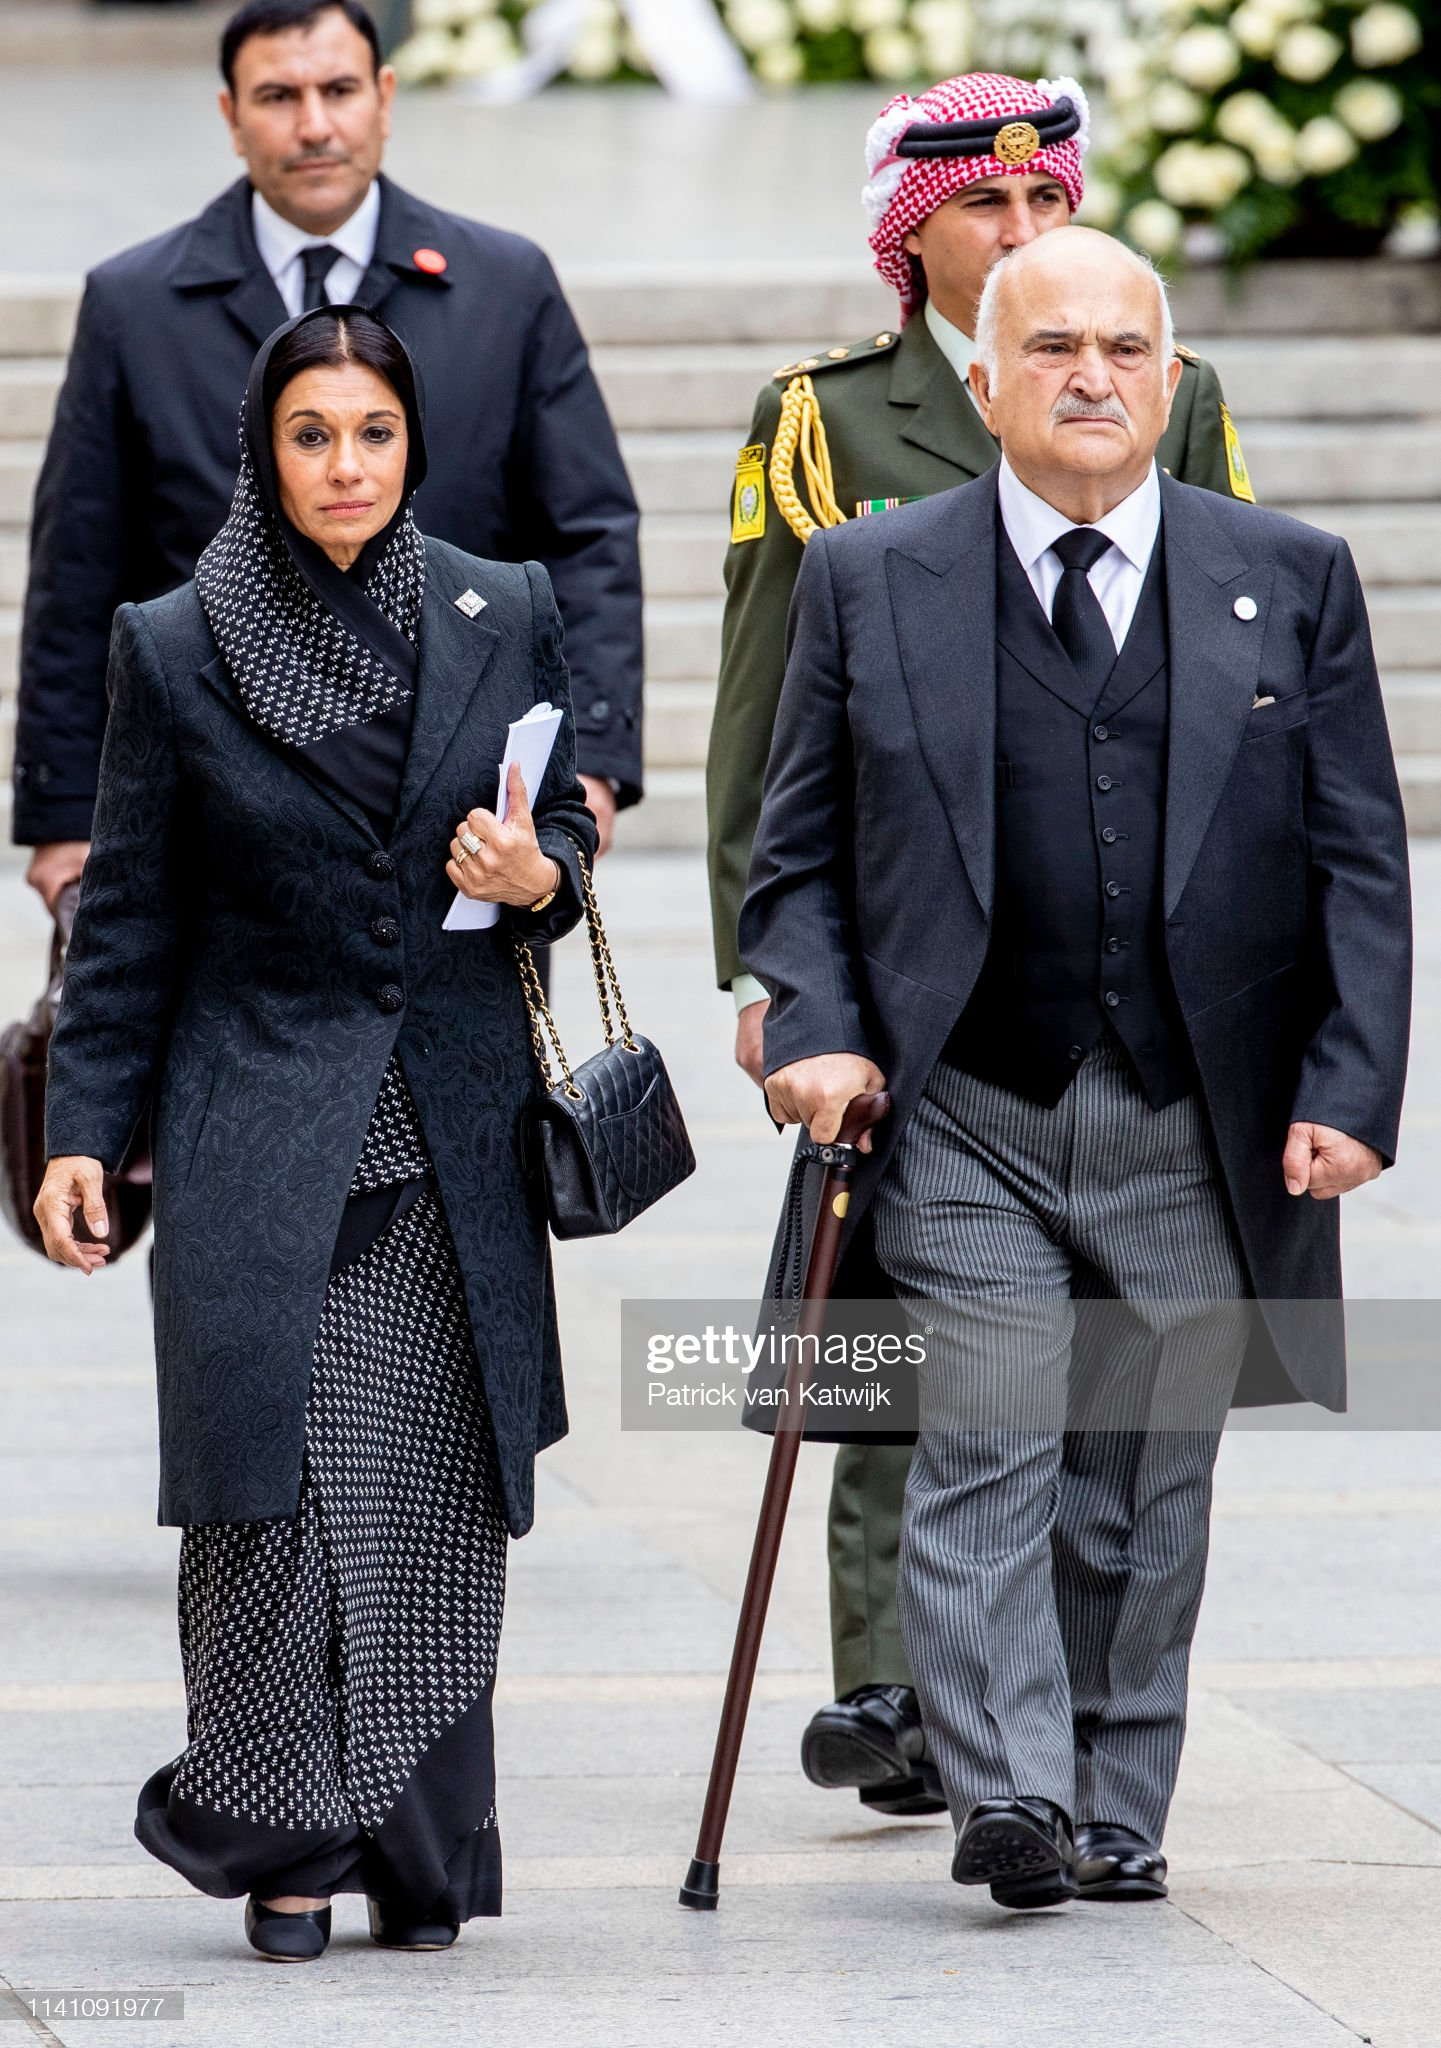 https://media.gettyimages.com/photos/prince-hassan-of-jordan-and-princess-sarvath-of-jordan-attend-the-of-picture-id1141091977?s=2048x2048